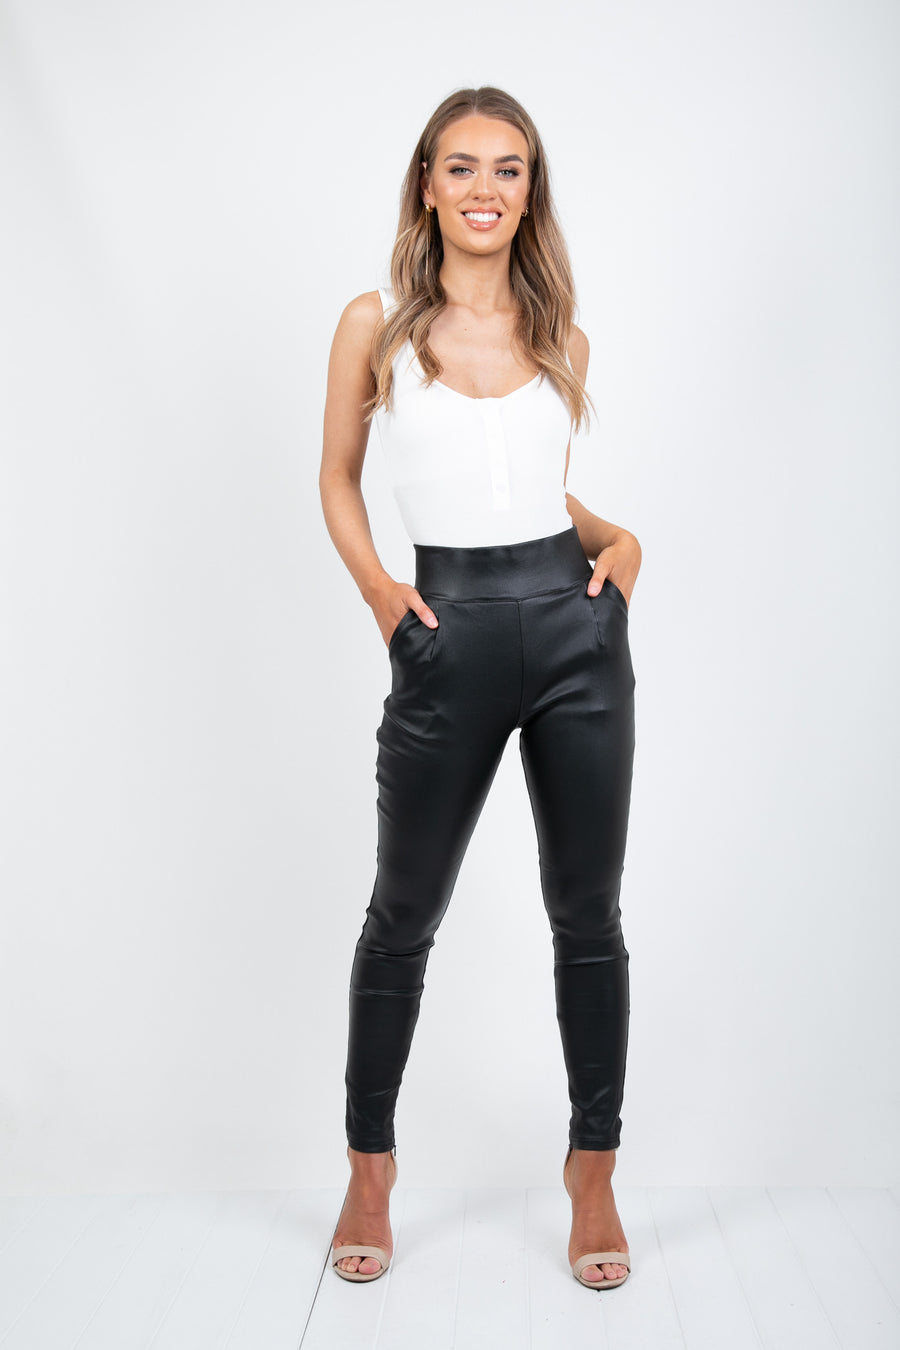 DESTINY SHINE PANT - BLACK